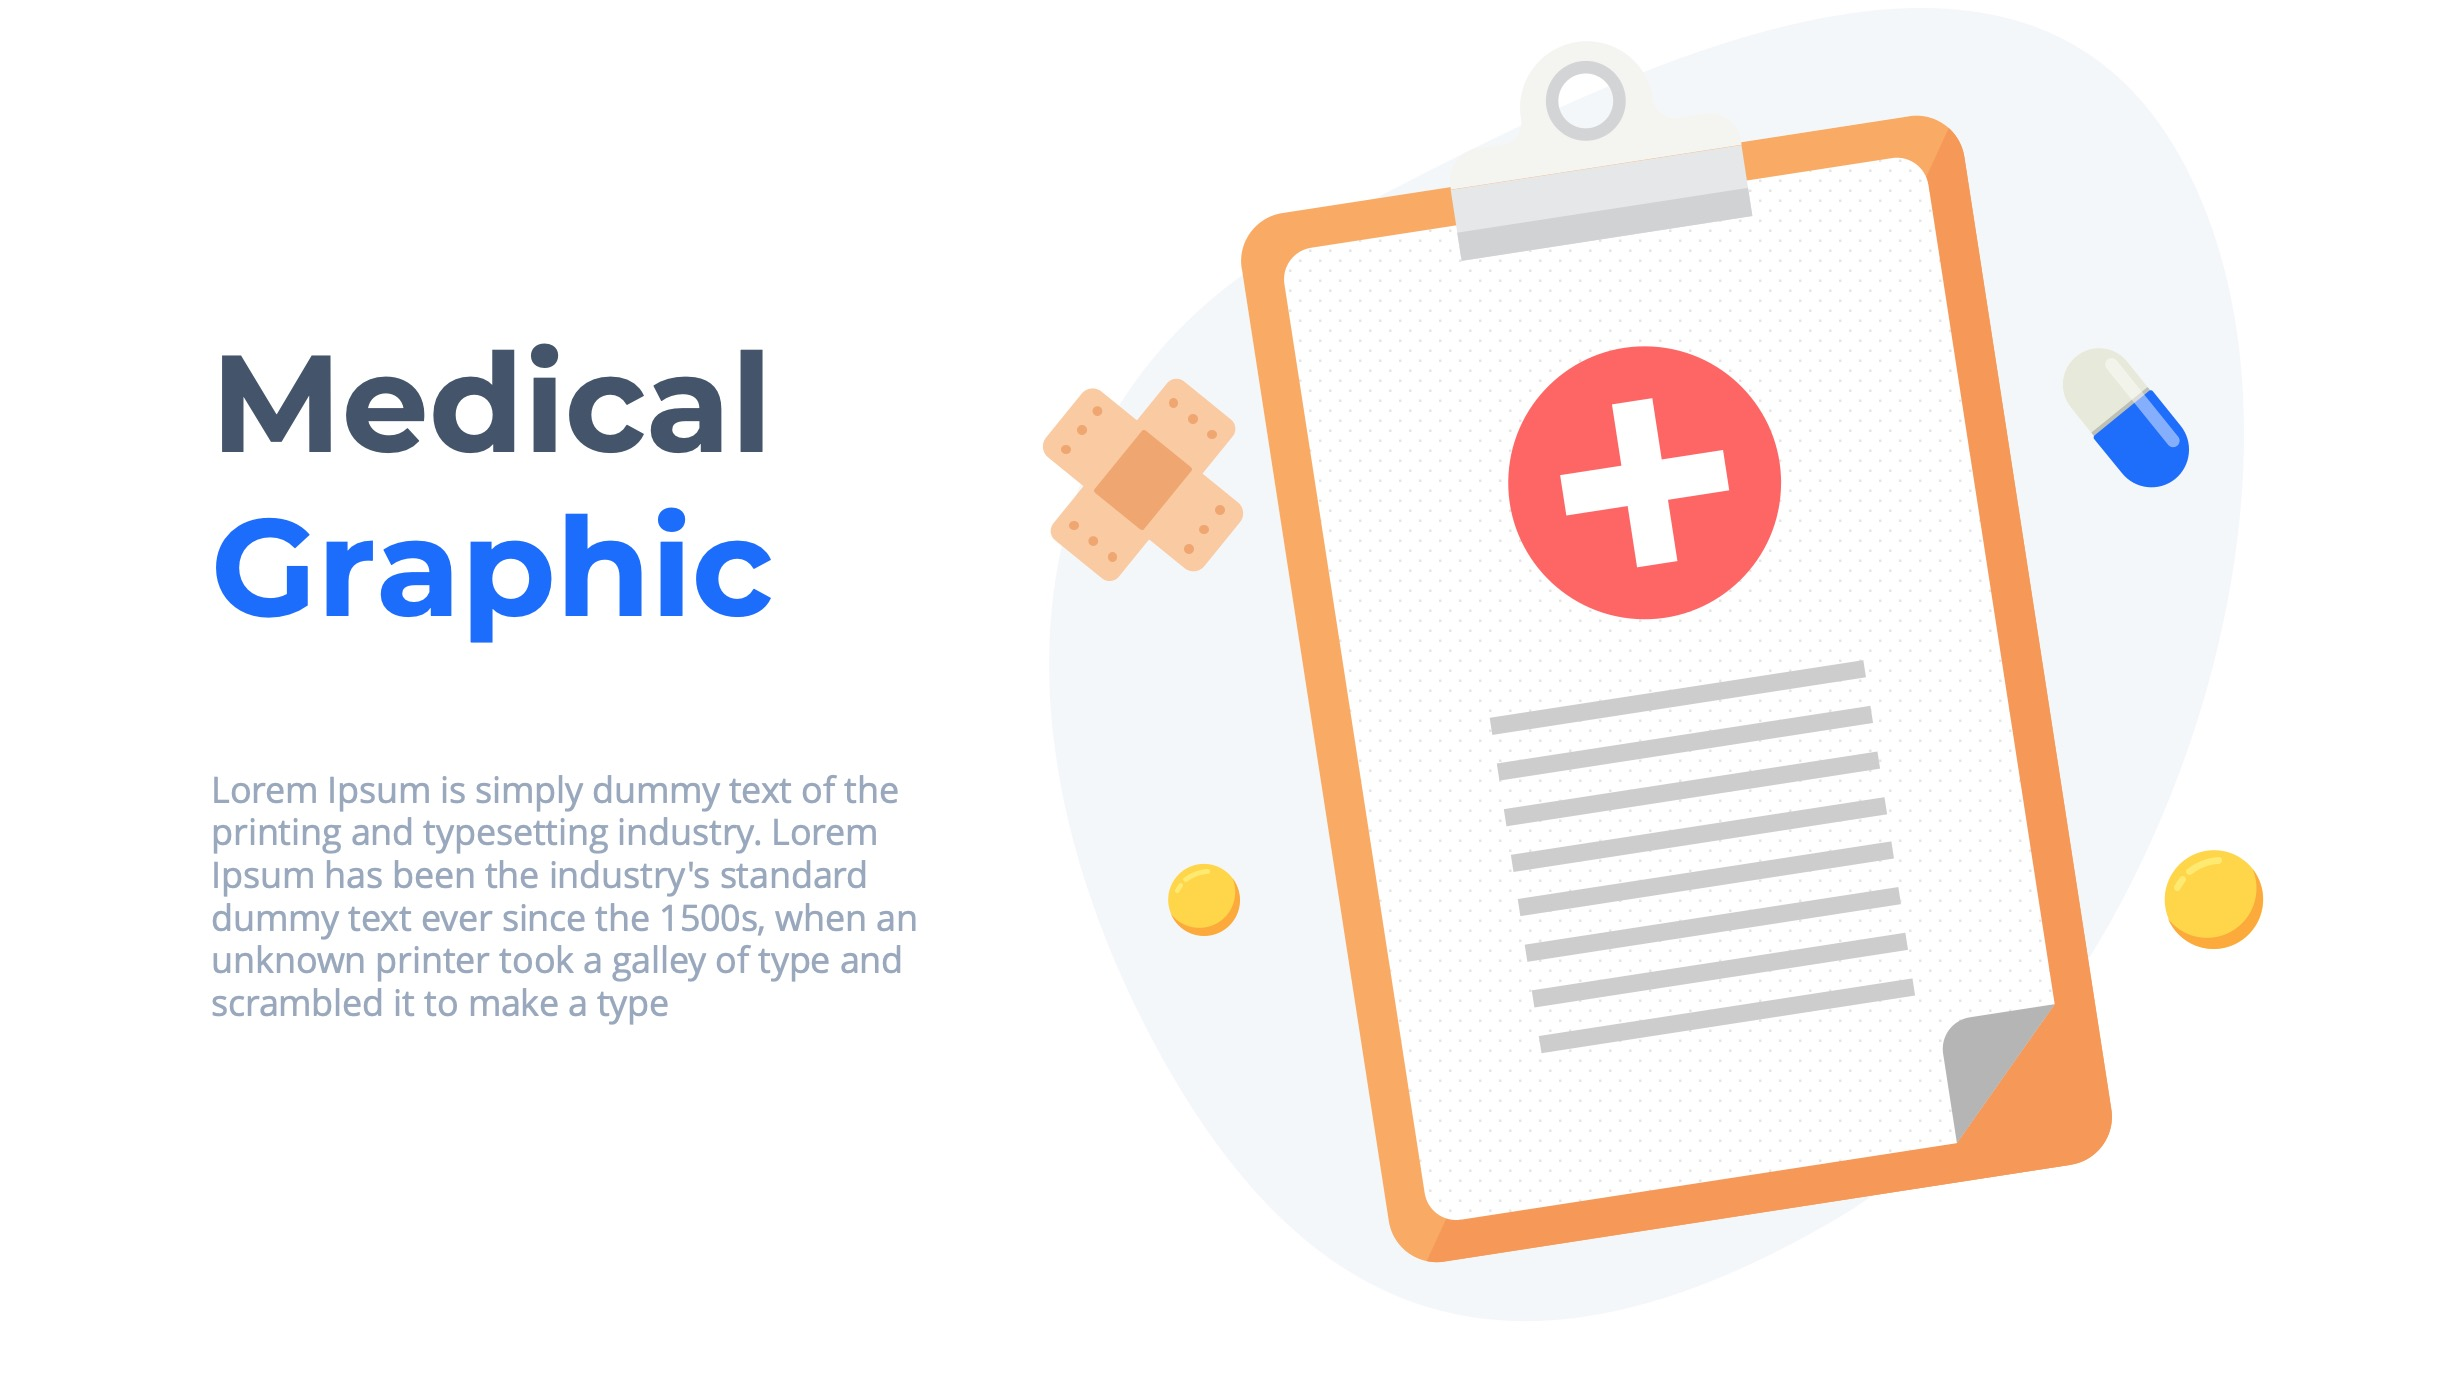 10 medical graphic PowerPoint slides